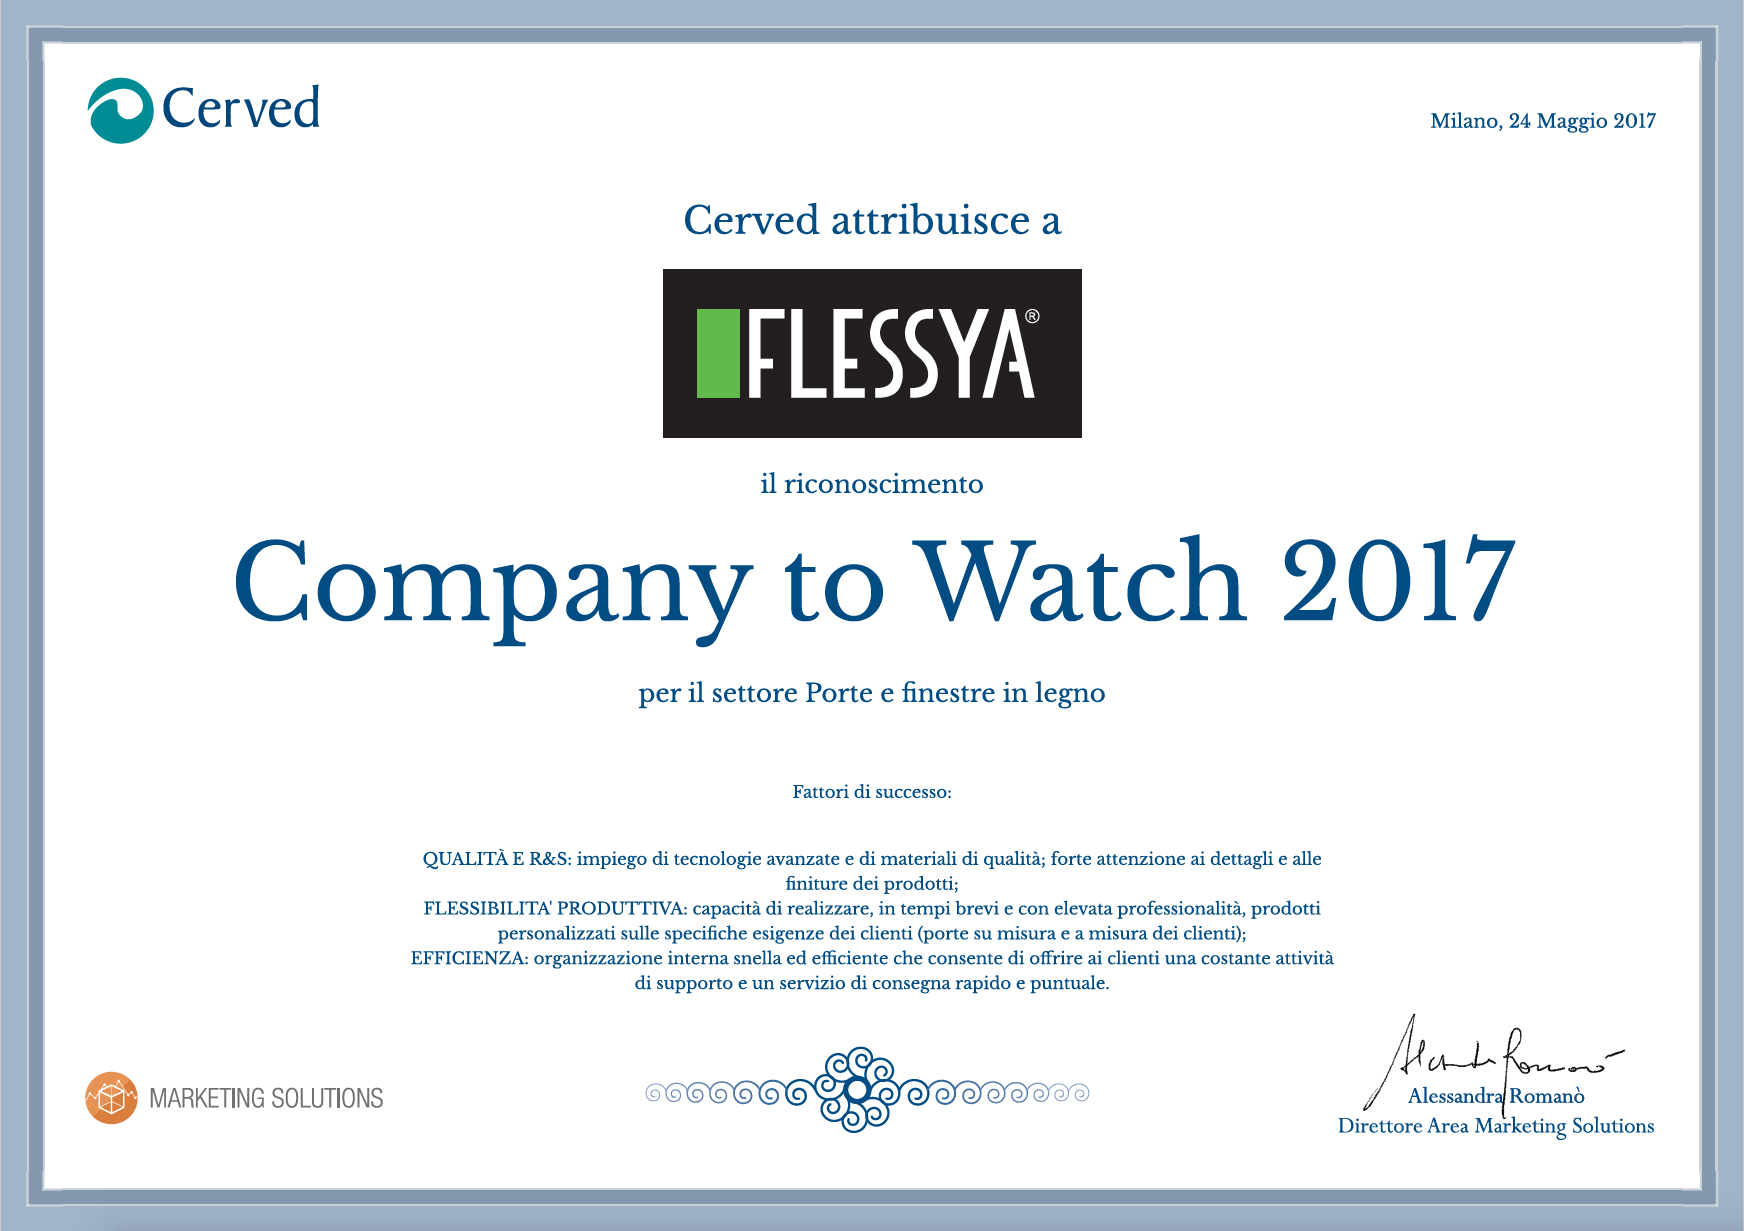 Company to Watch 2017 - Flessya